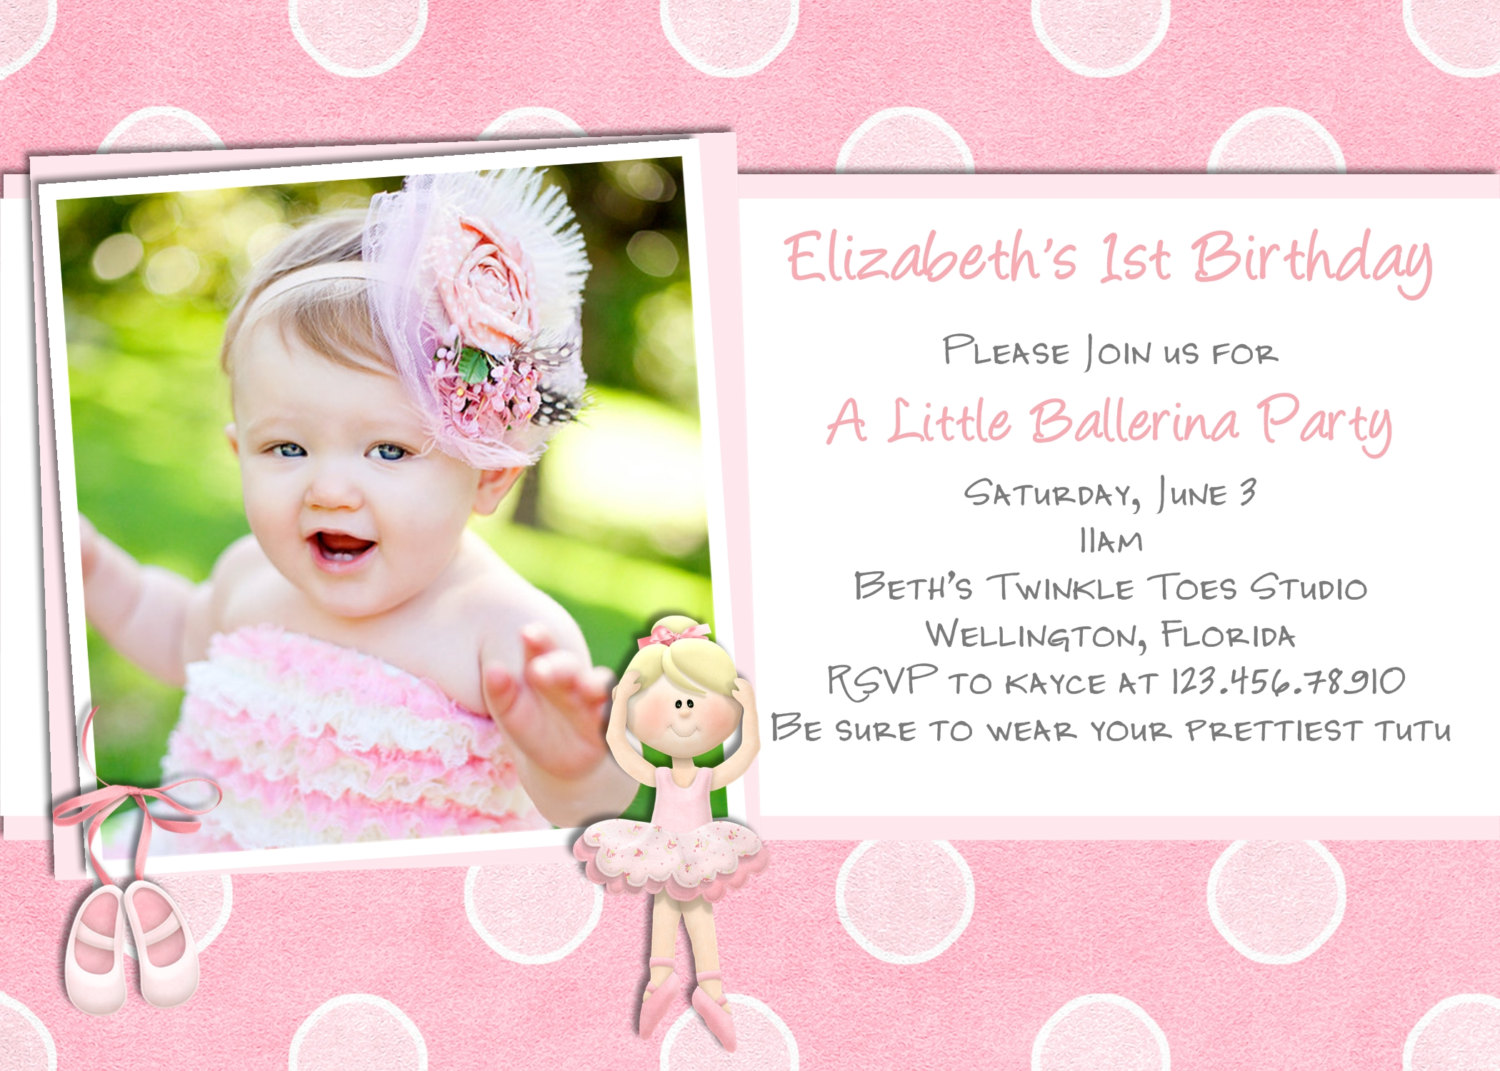 birthday design invitations ; 1c52cd6dcc7d52b769156b9fec2183ab